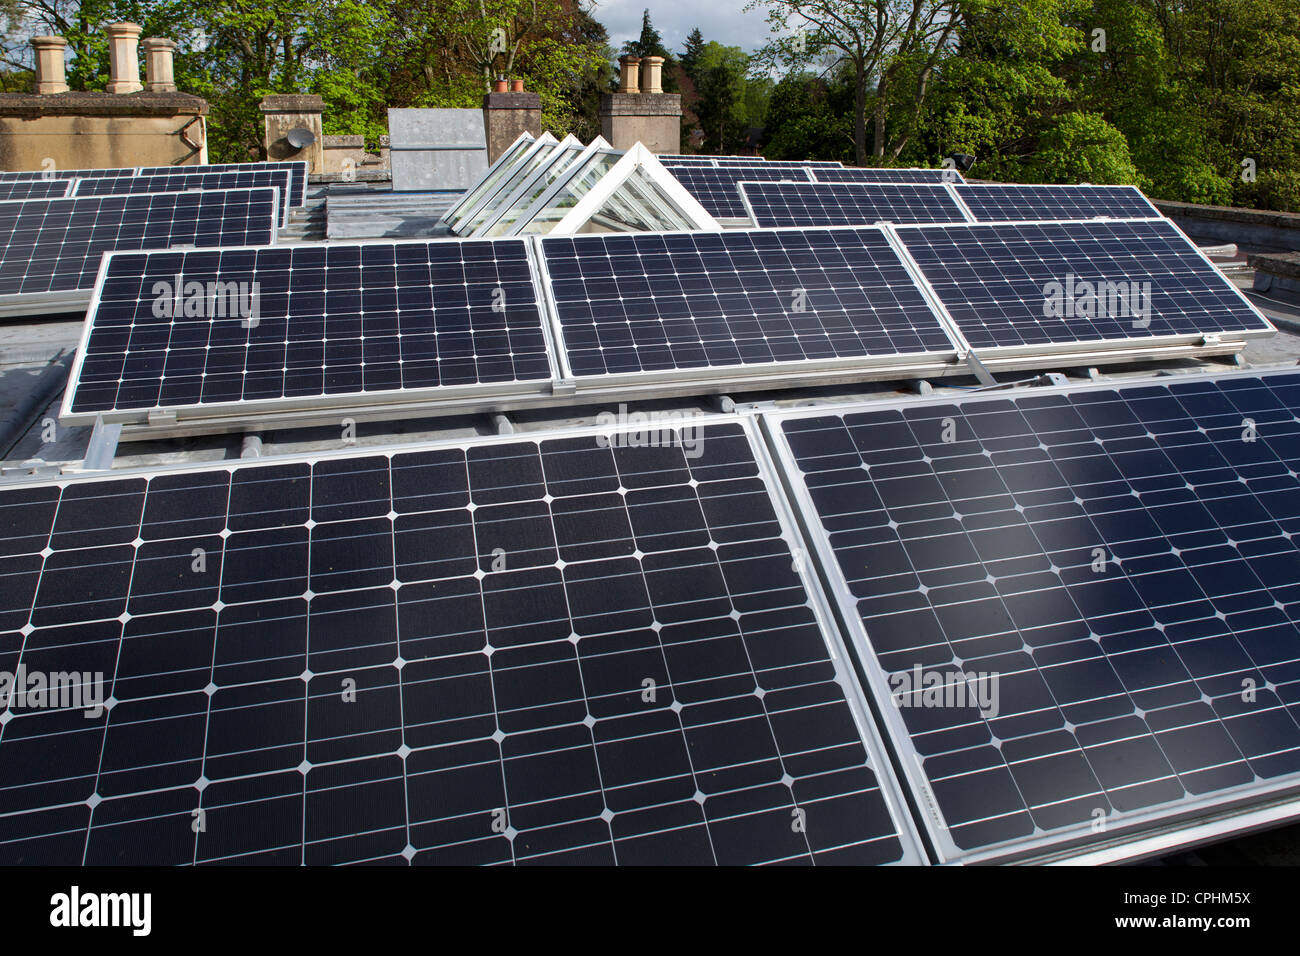 Solar panels on flat roof of private house, England - Stock Image